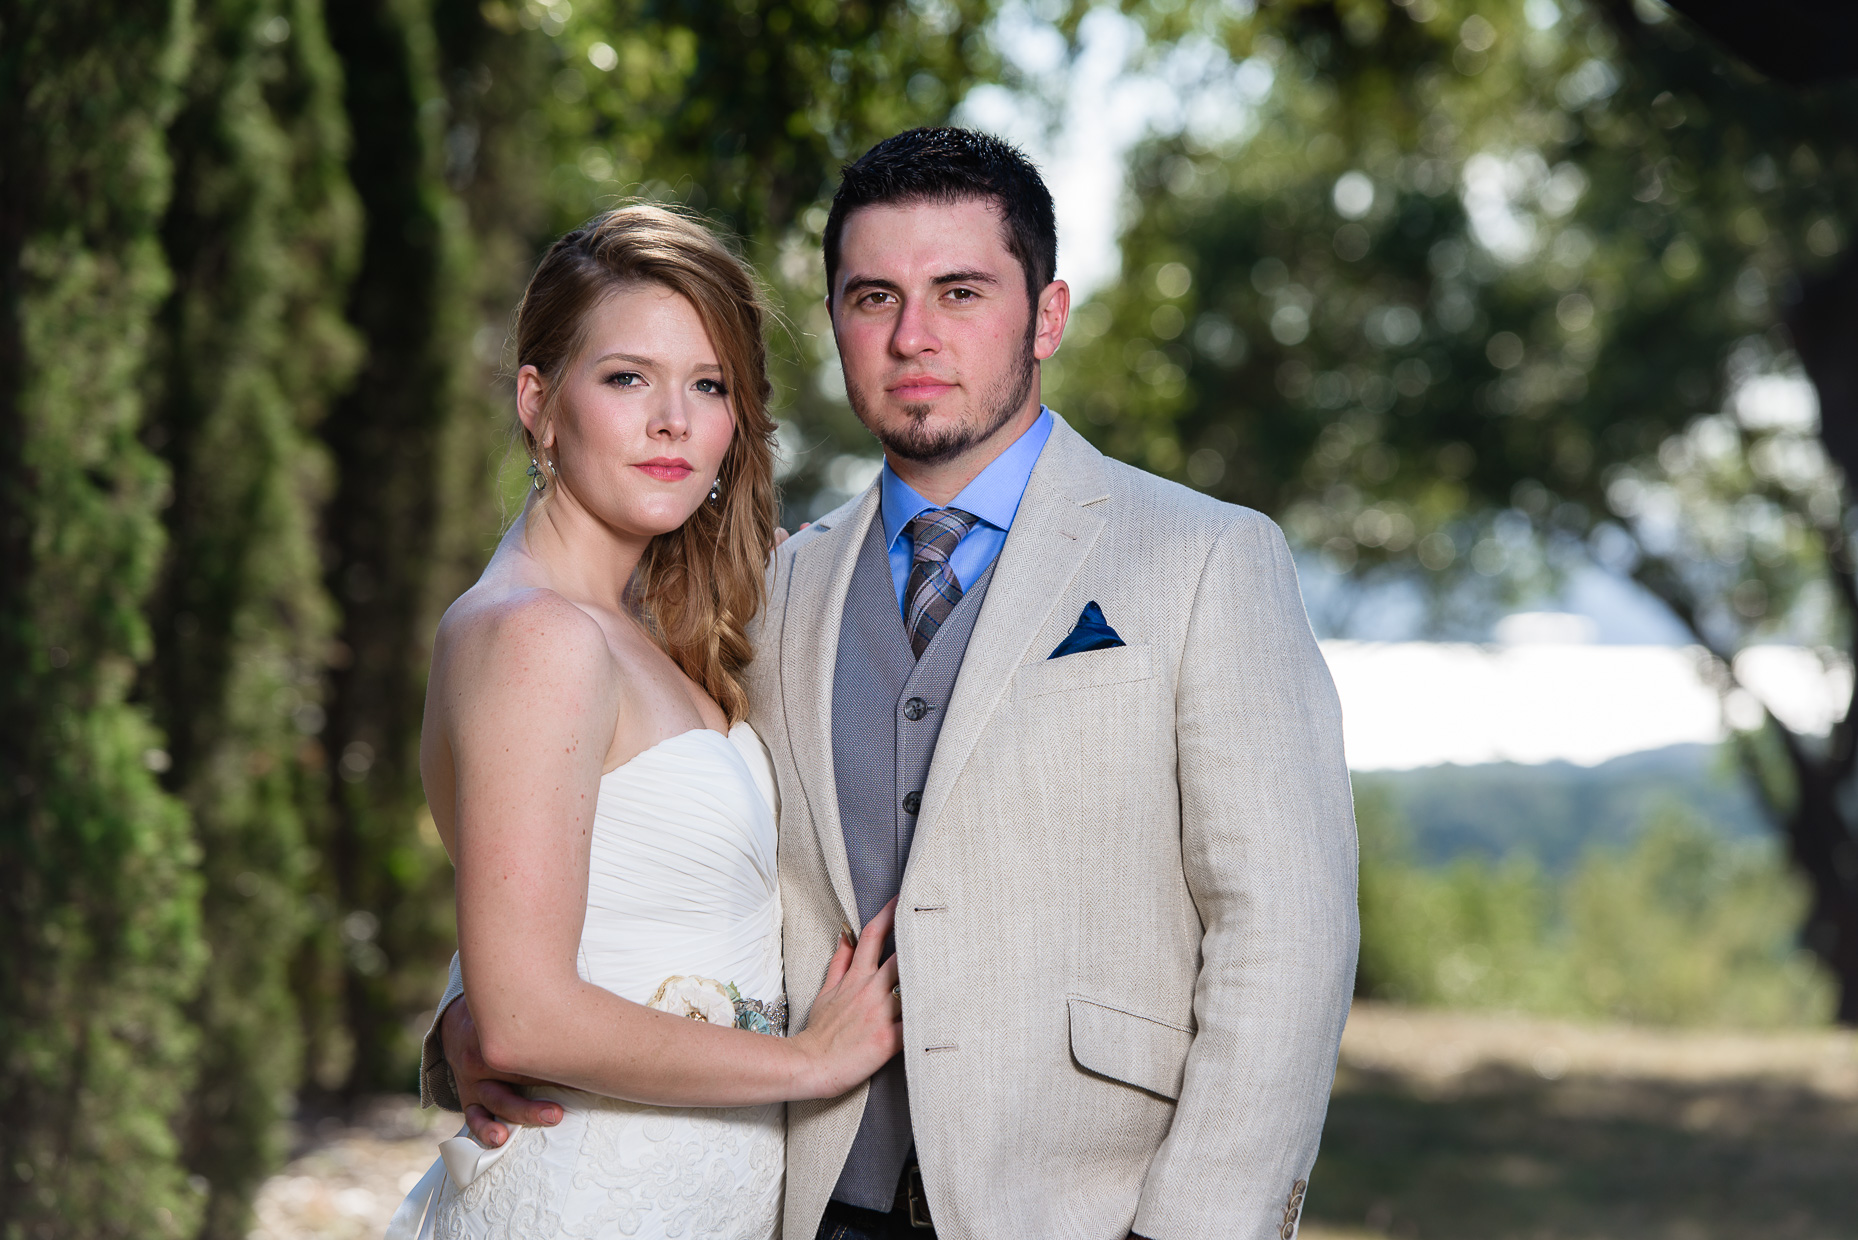 Hacienda-del-lago-portrait-fall-wedding-austin-photographer